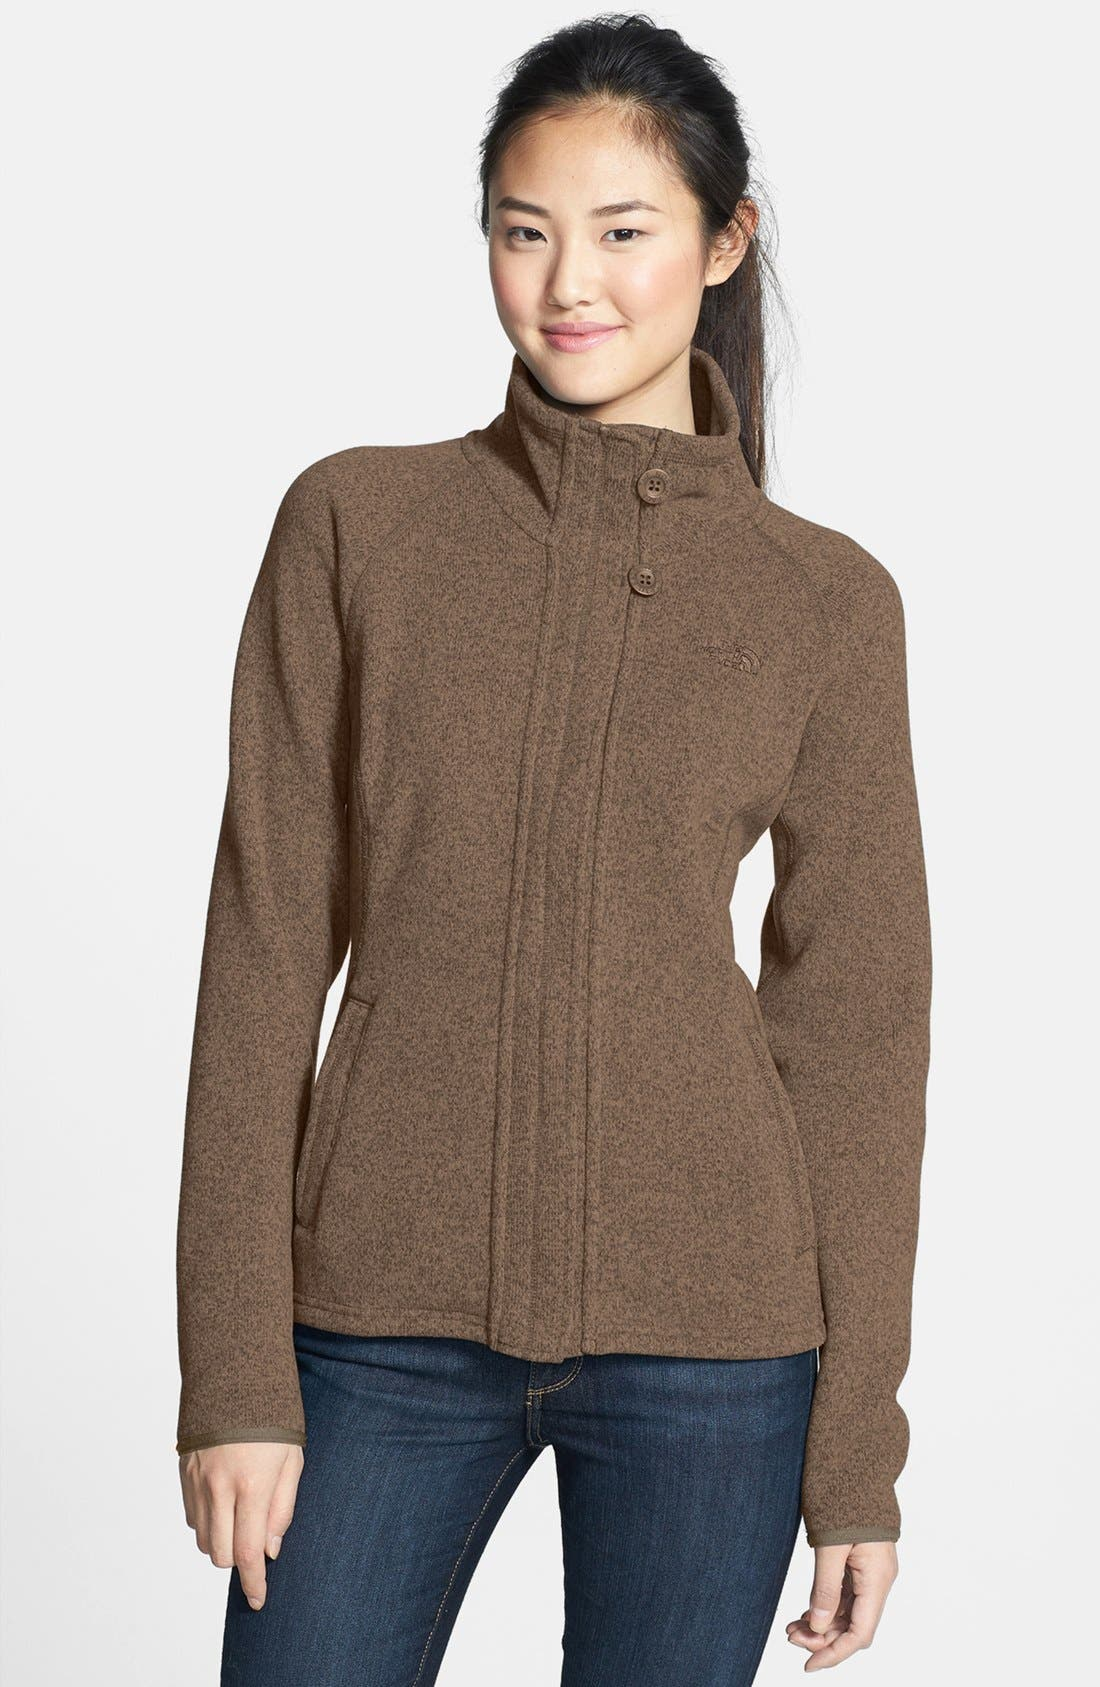 Alternate Image 1 Selected - The North Face 'Crescent' Full Zip Jacket